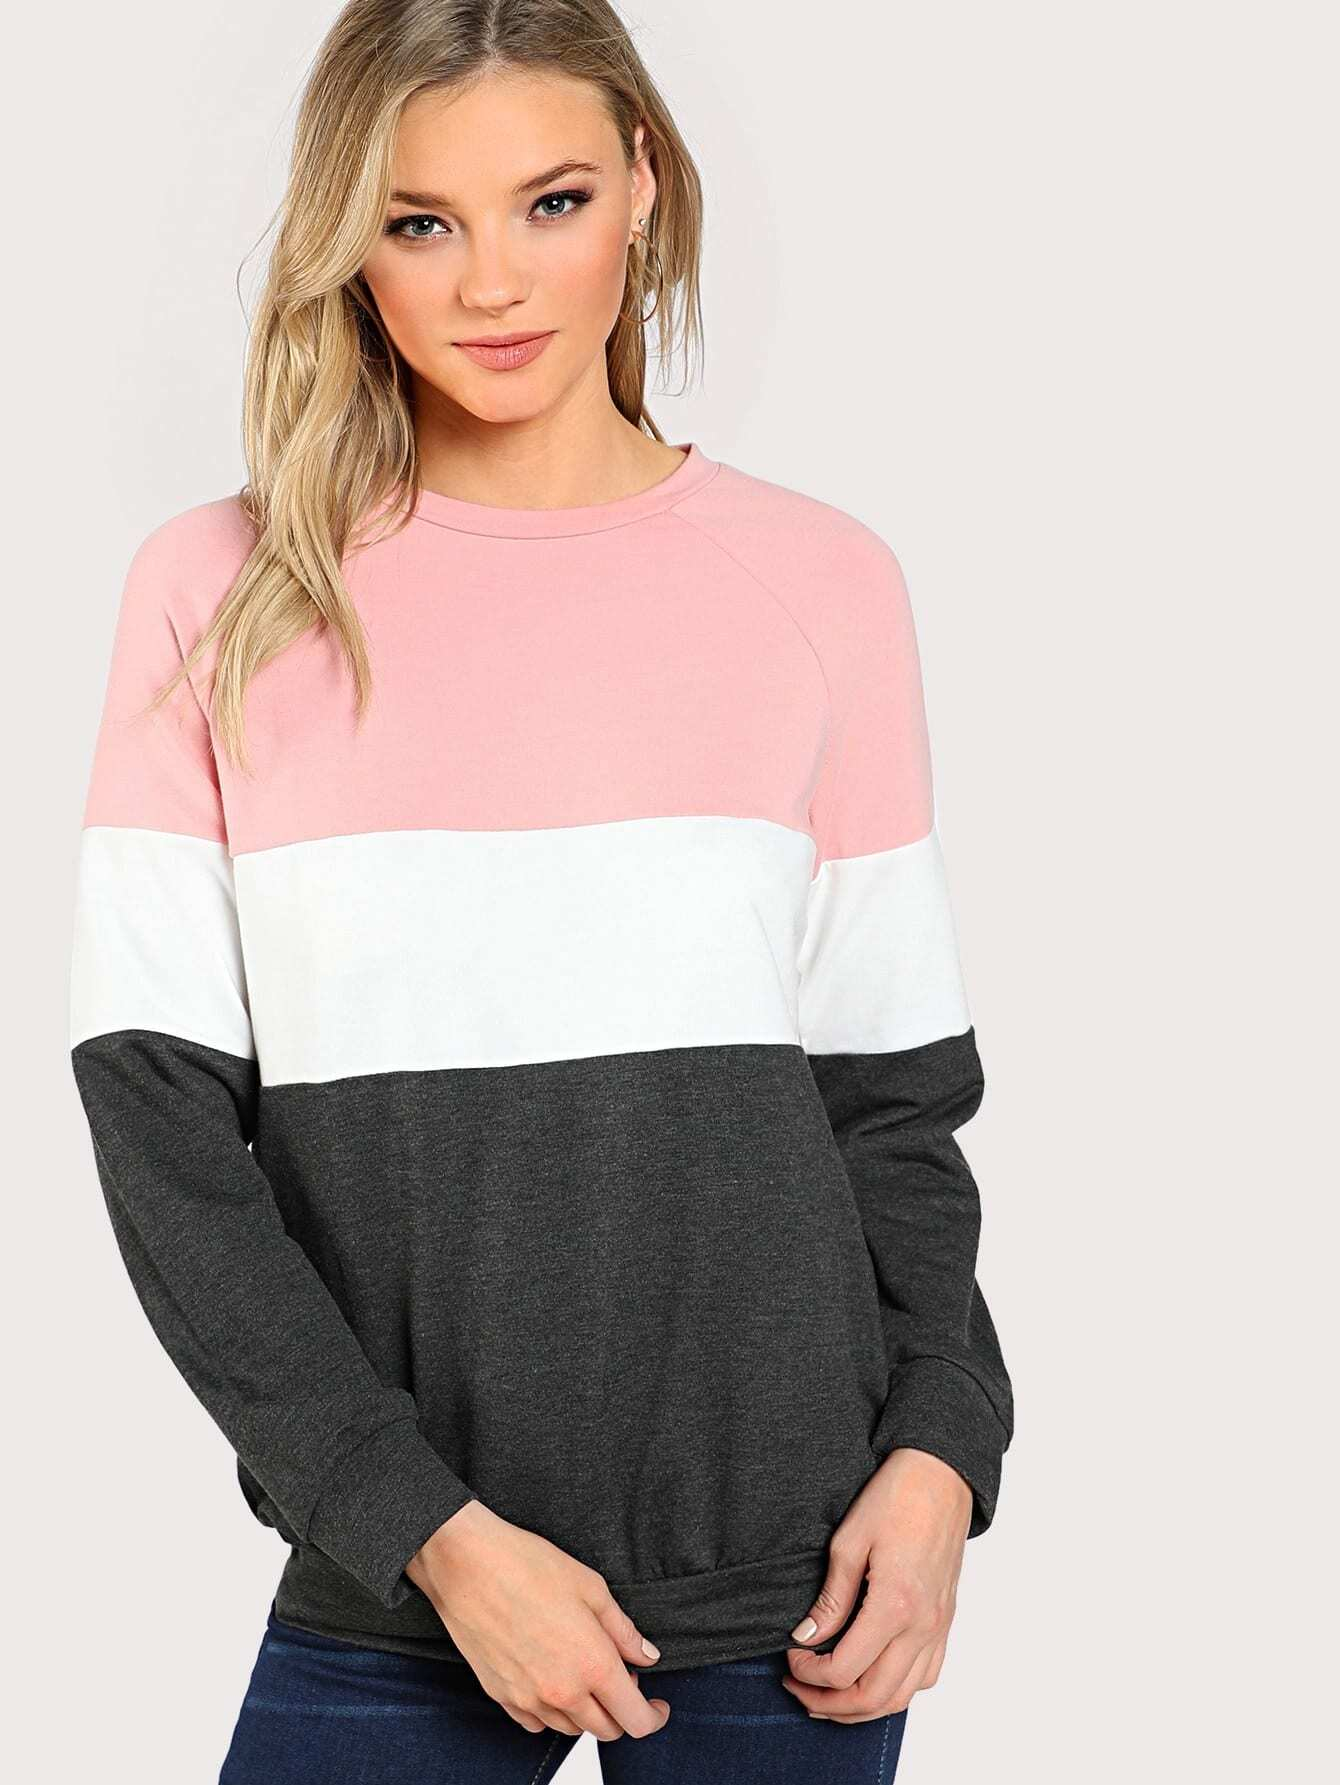 Cut And Sew Raglan Sleeve Sweatshirt cut and sew raglan sleeve heathered pullover